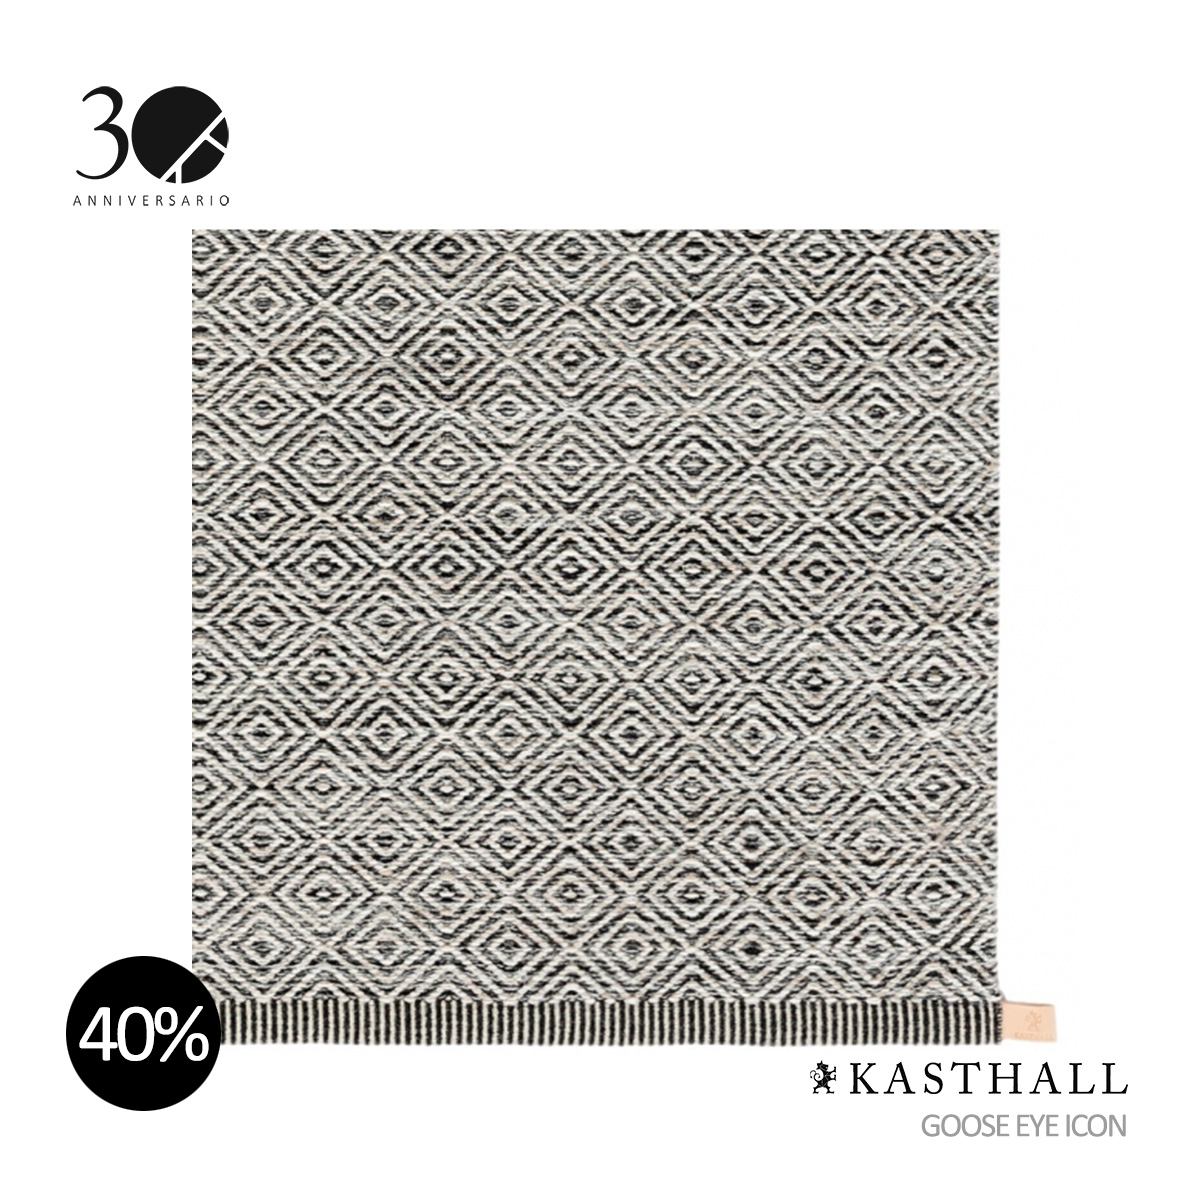 KASTHALL - GOOSE EYE ICON